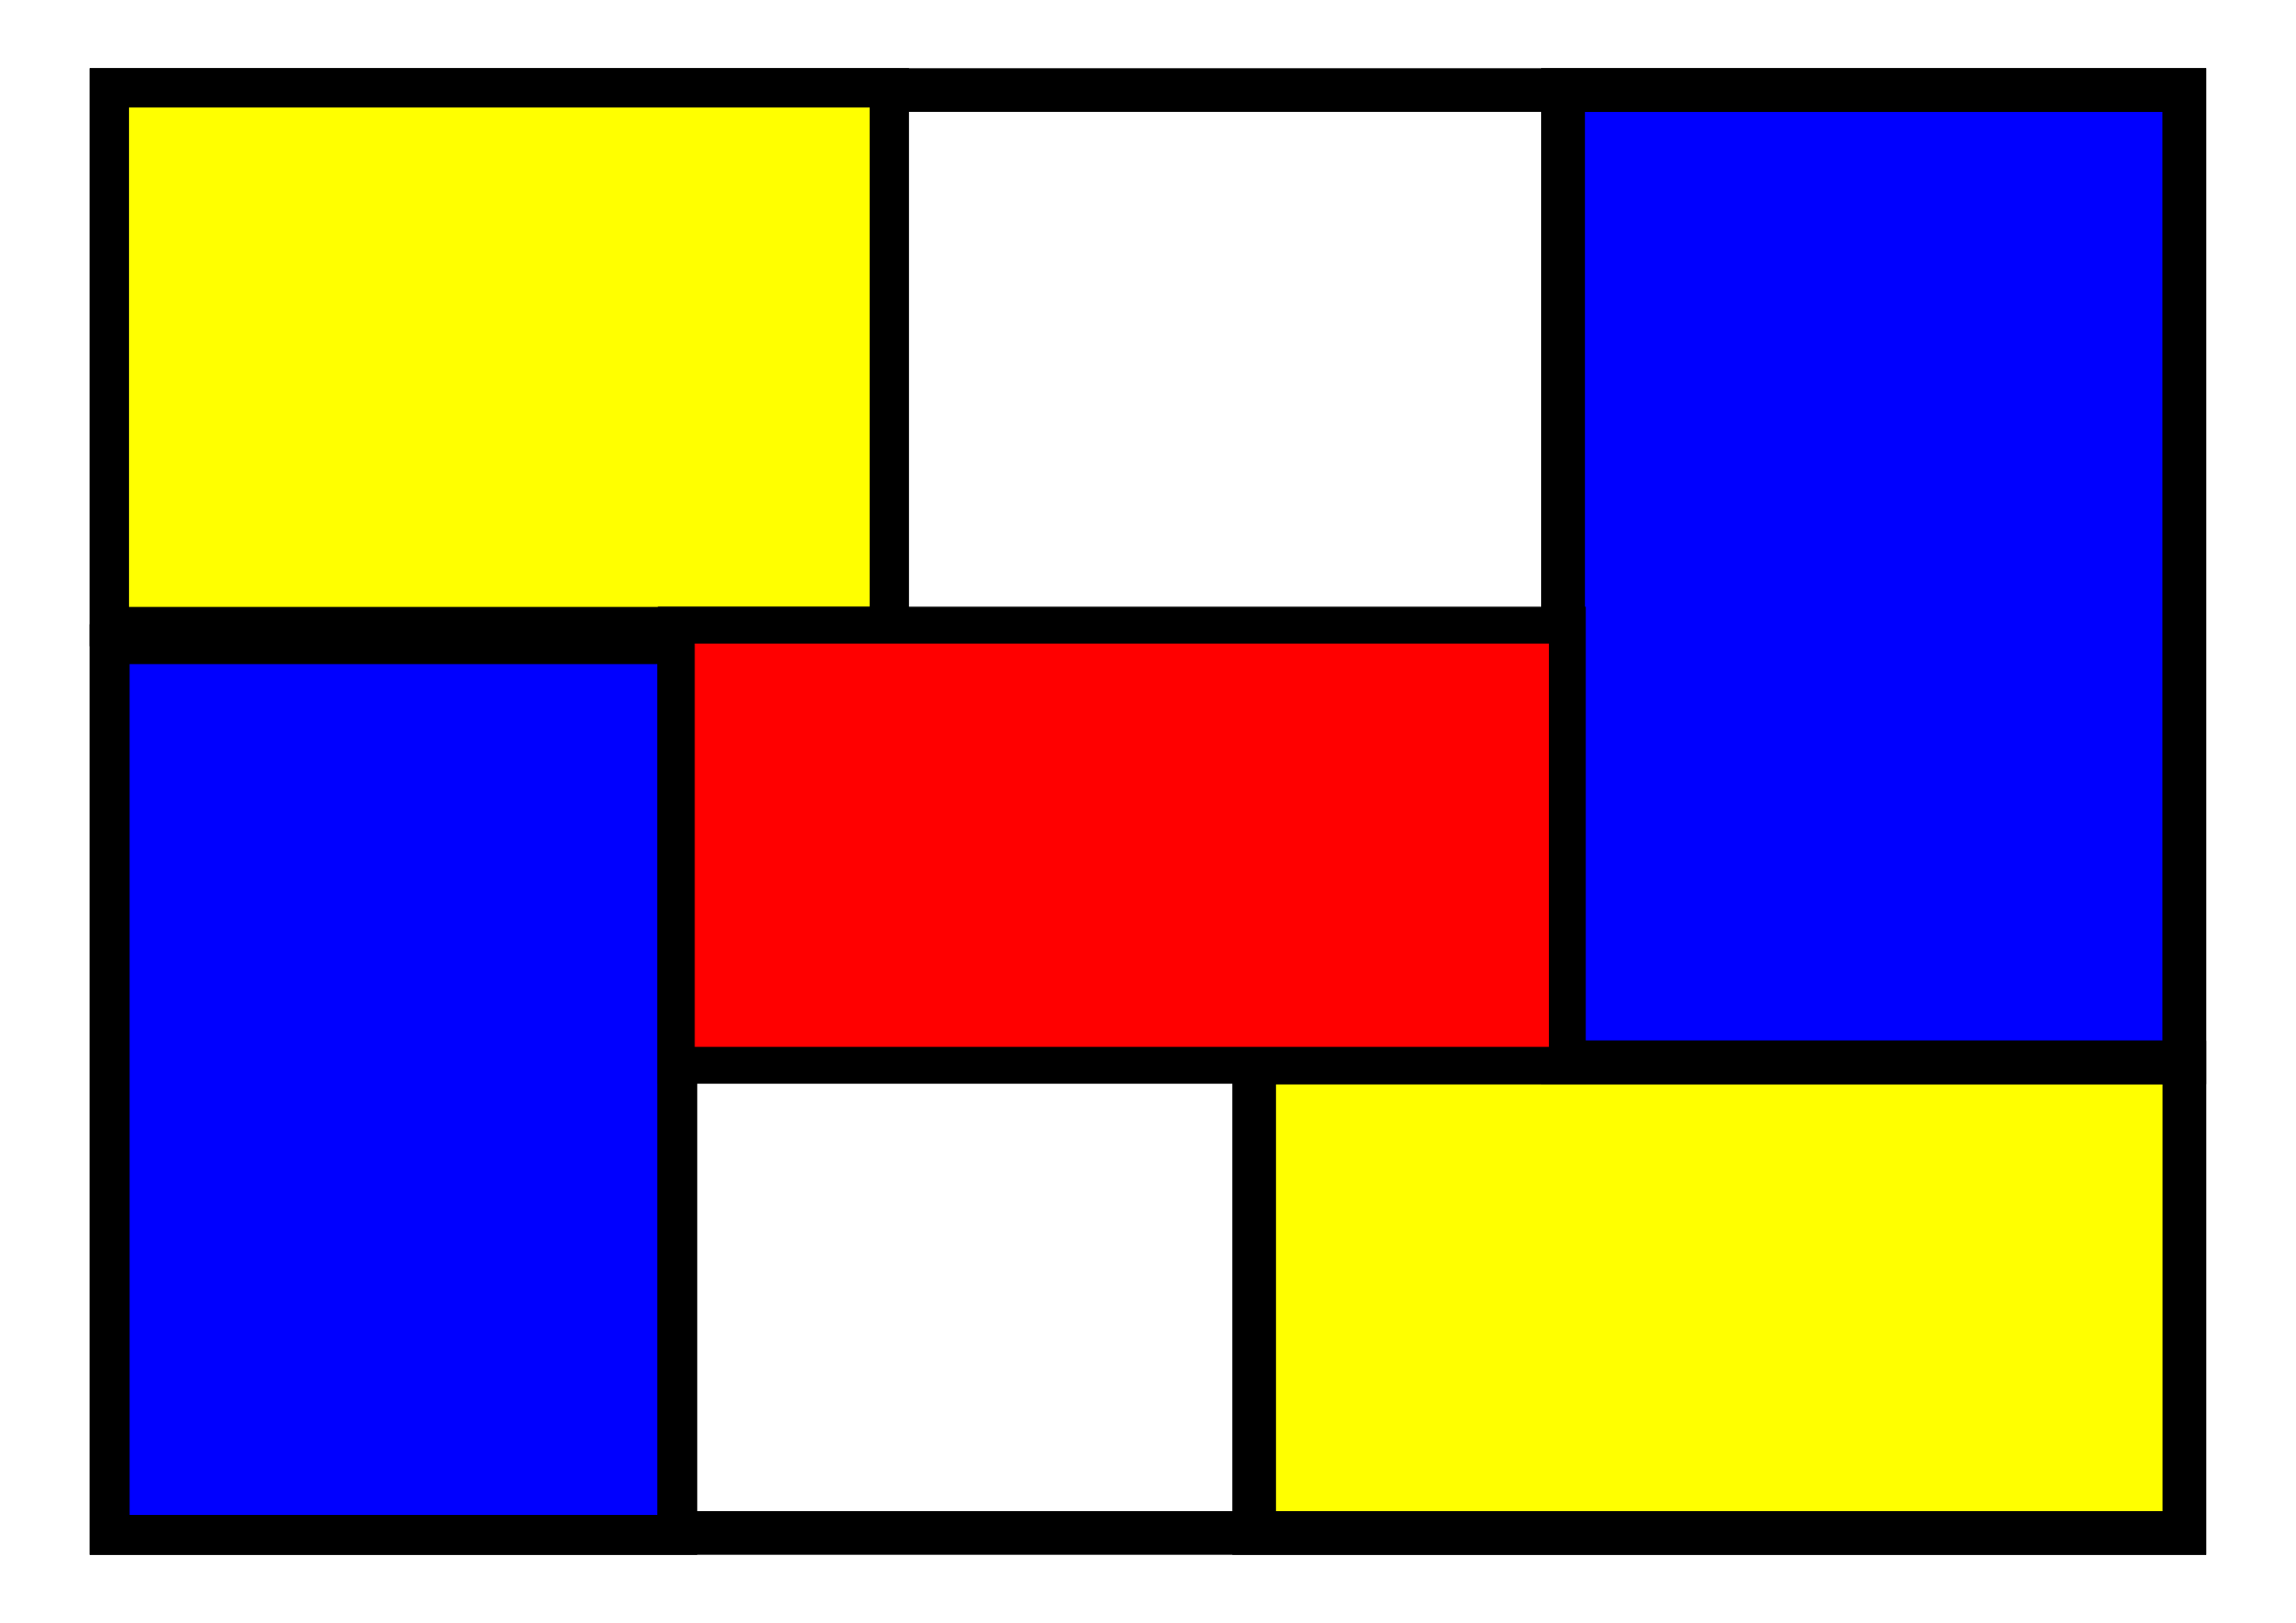 mondrian by dordy